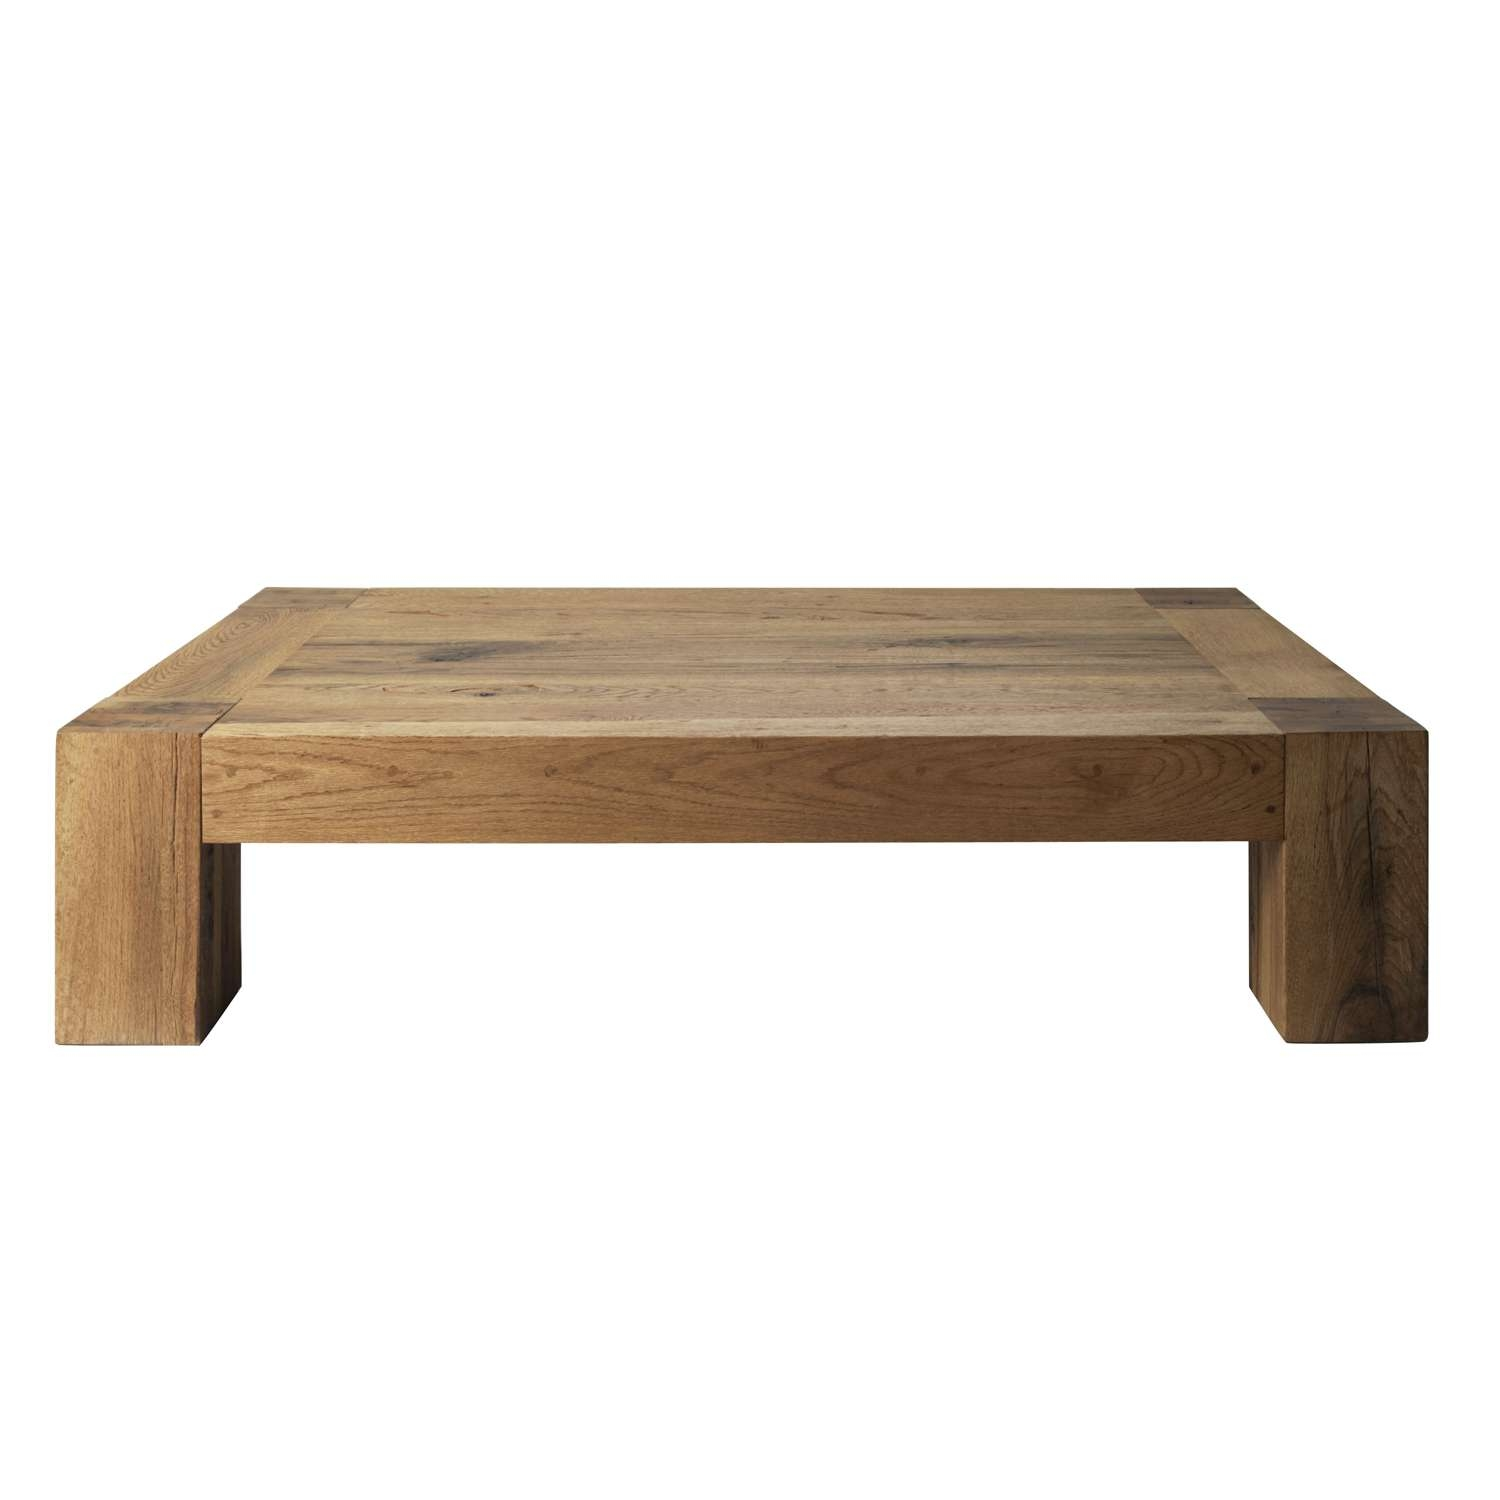 Most Popular Low Wood Coffee Tables Throughout Coffee Table : Amazing Granite Coffee Table Wood Coffee Table (View 18 of 20)